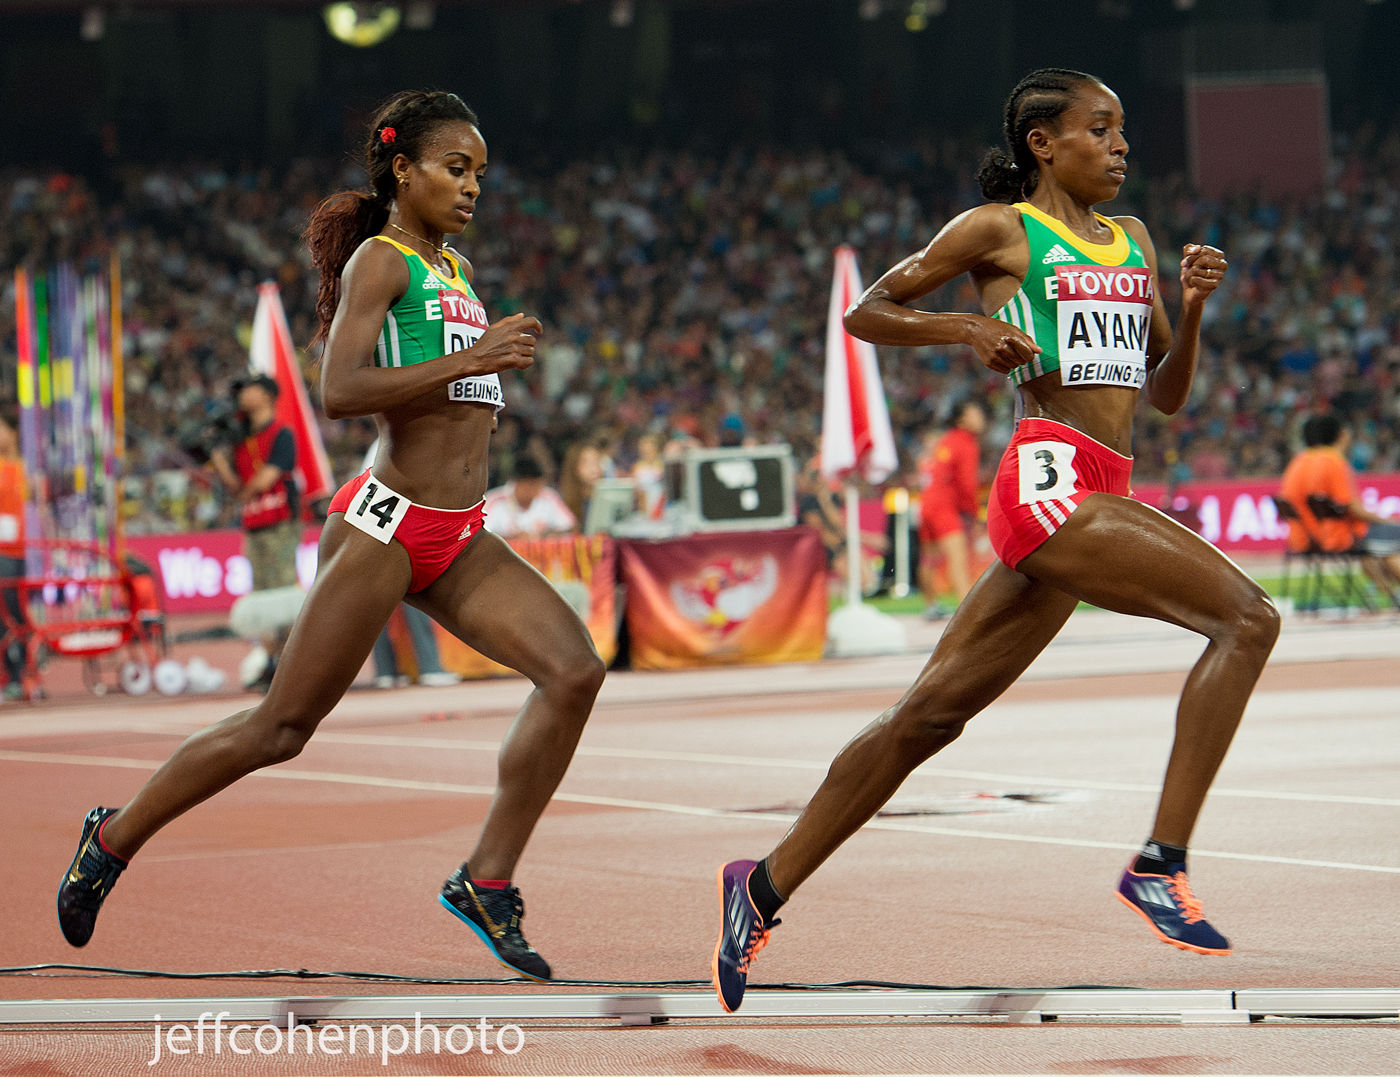 1beijing2015_night_9_ayana_dibaba_1500w_final_jeff_cohen_photo_34561_web.jpg